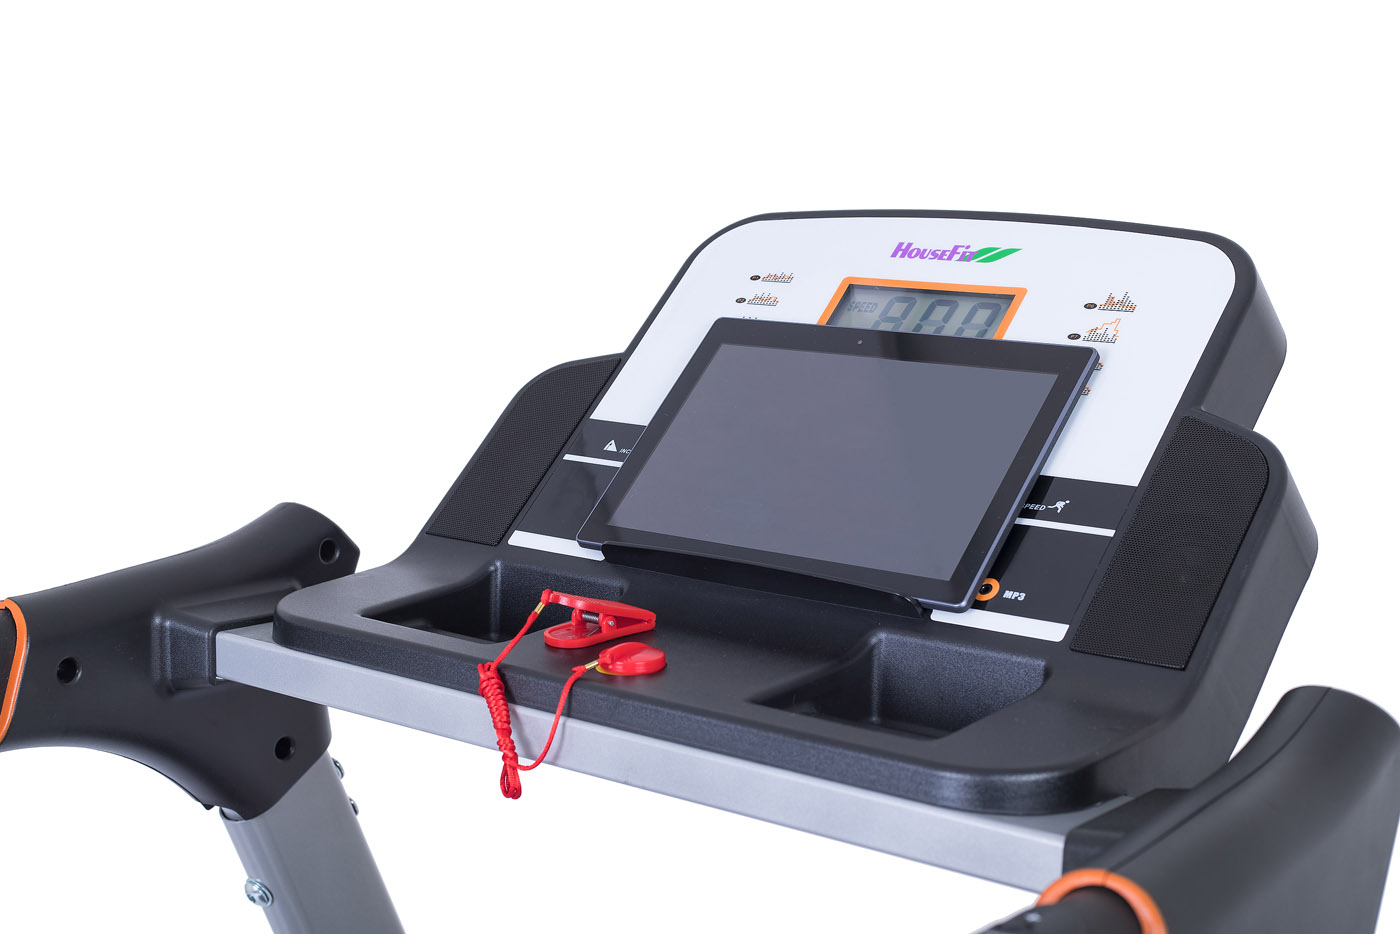 HouseFit Tempo30 tablet